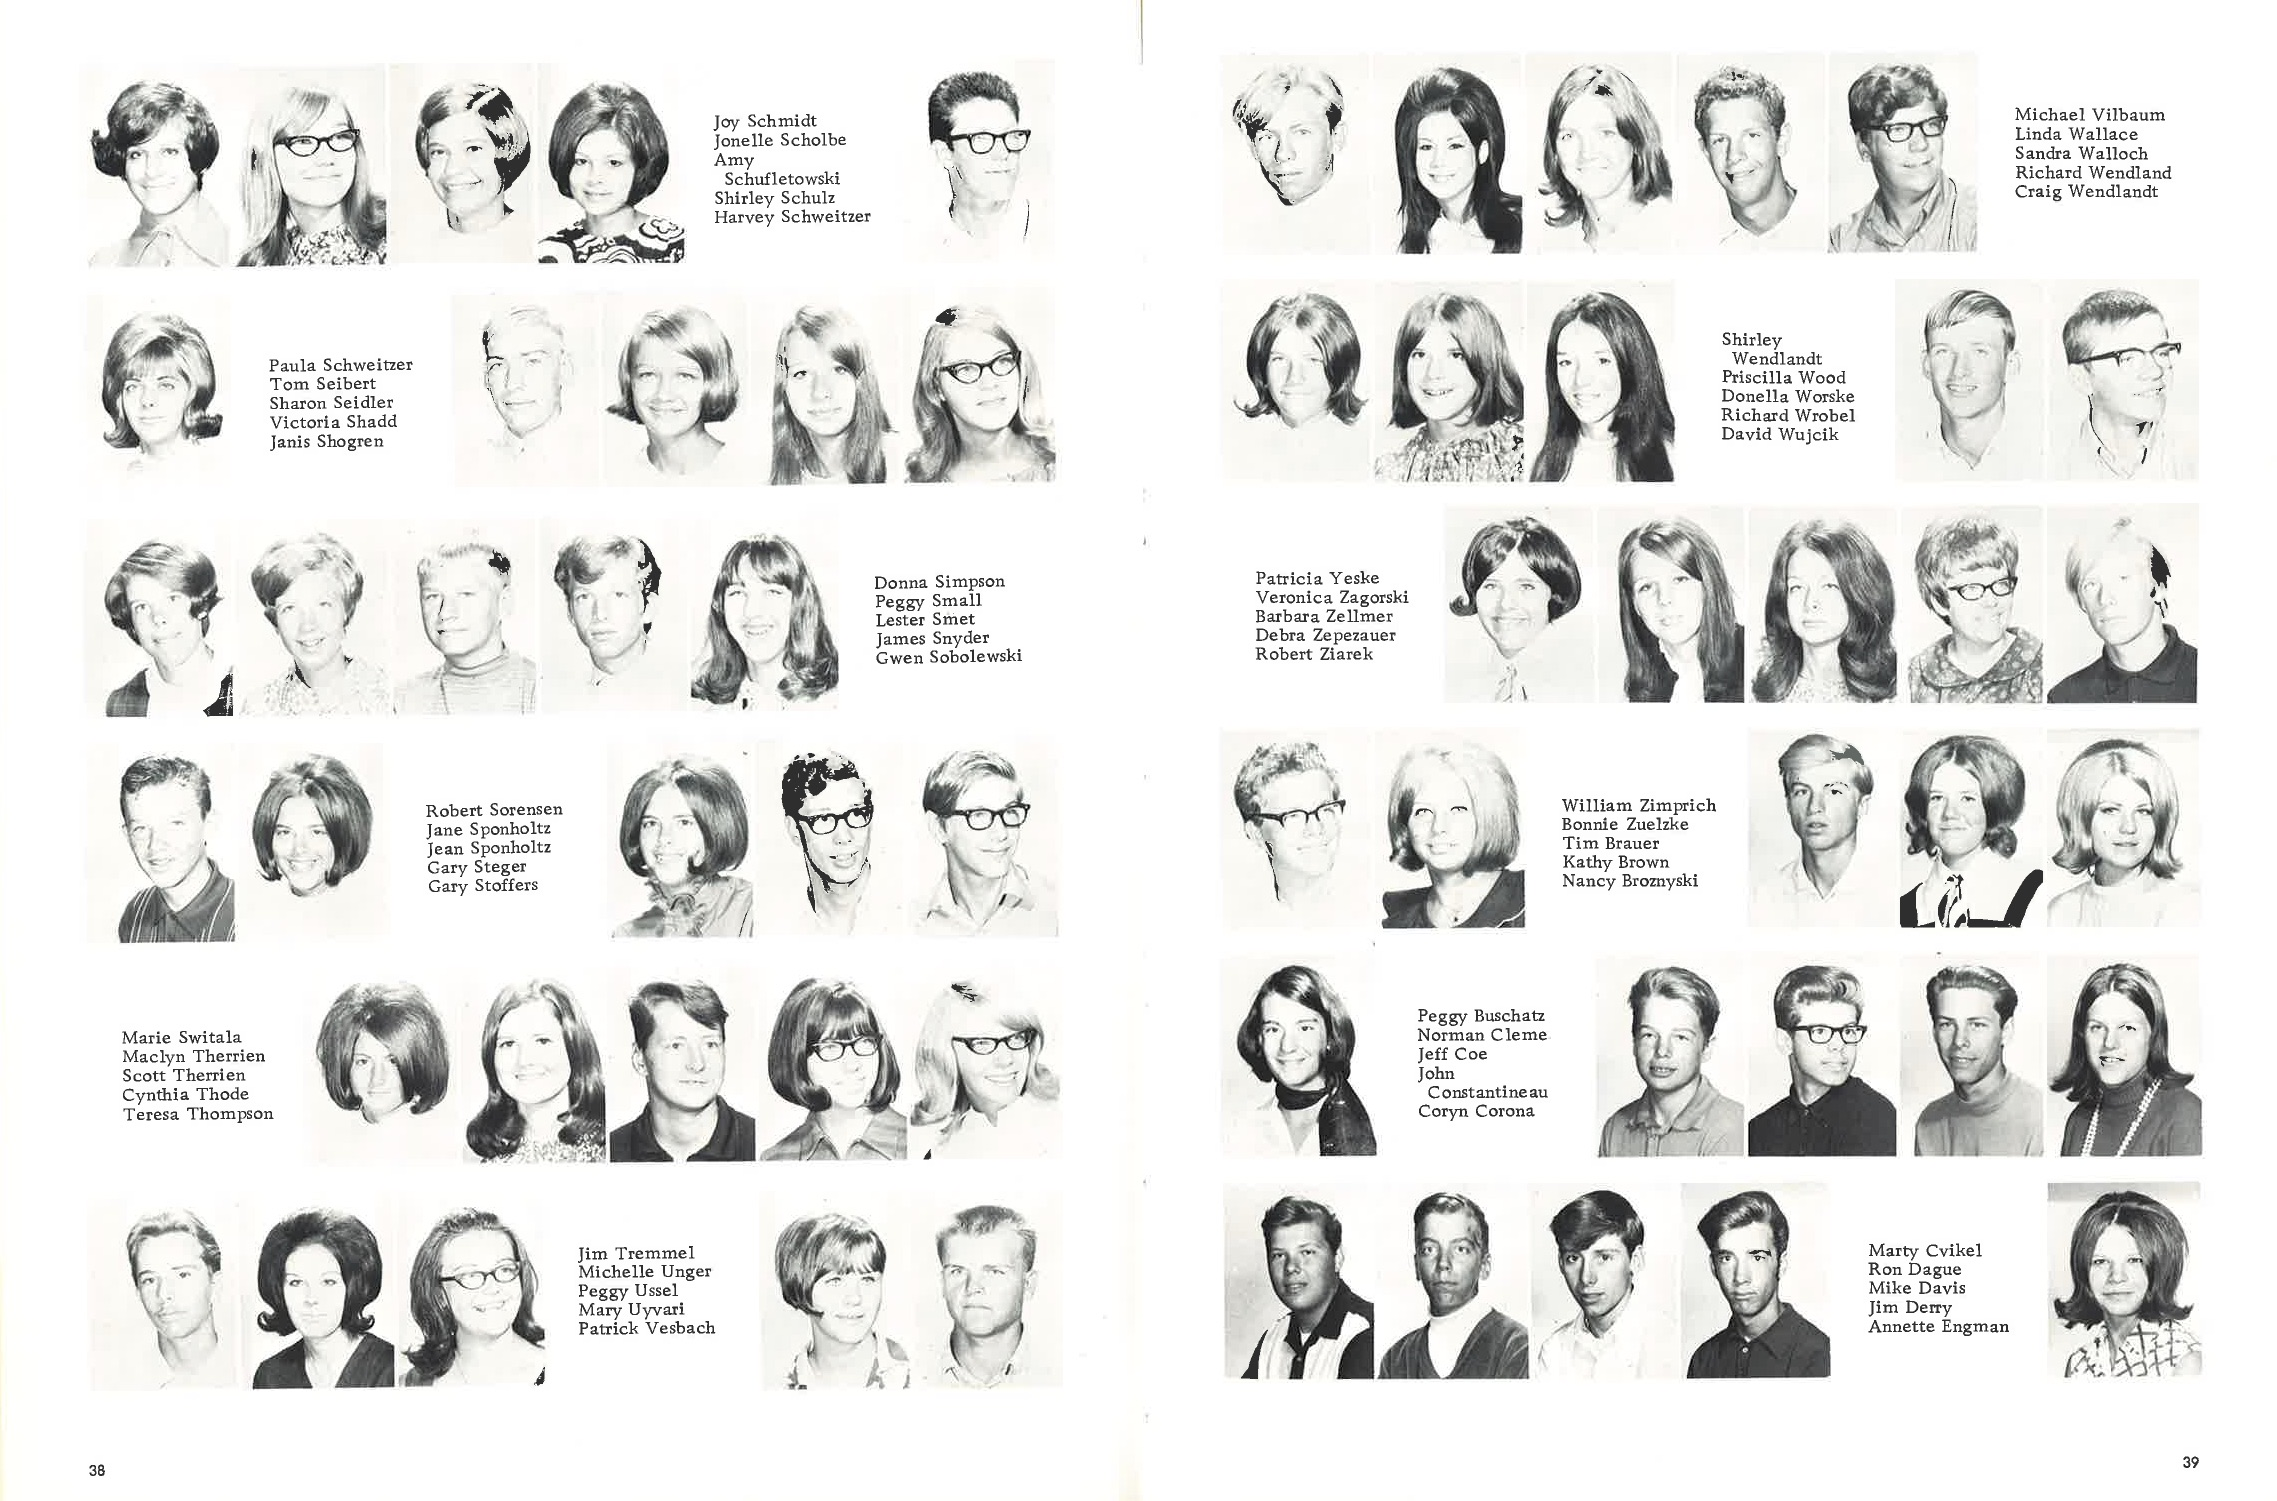 1970_Yearbook_38-39.jpg